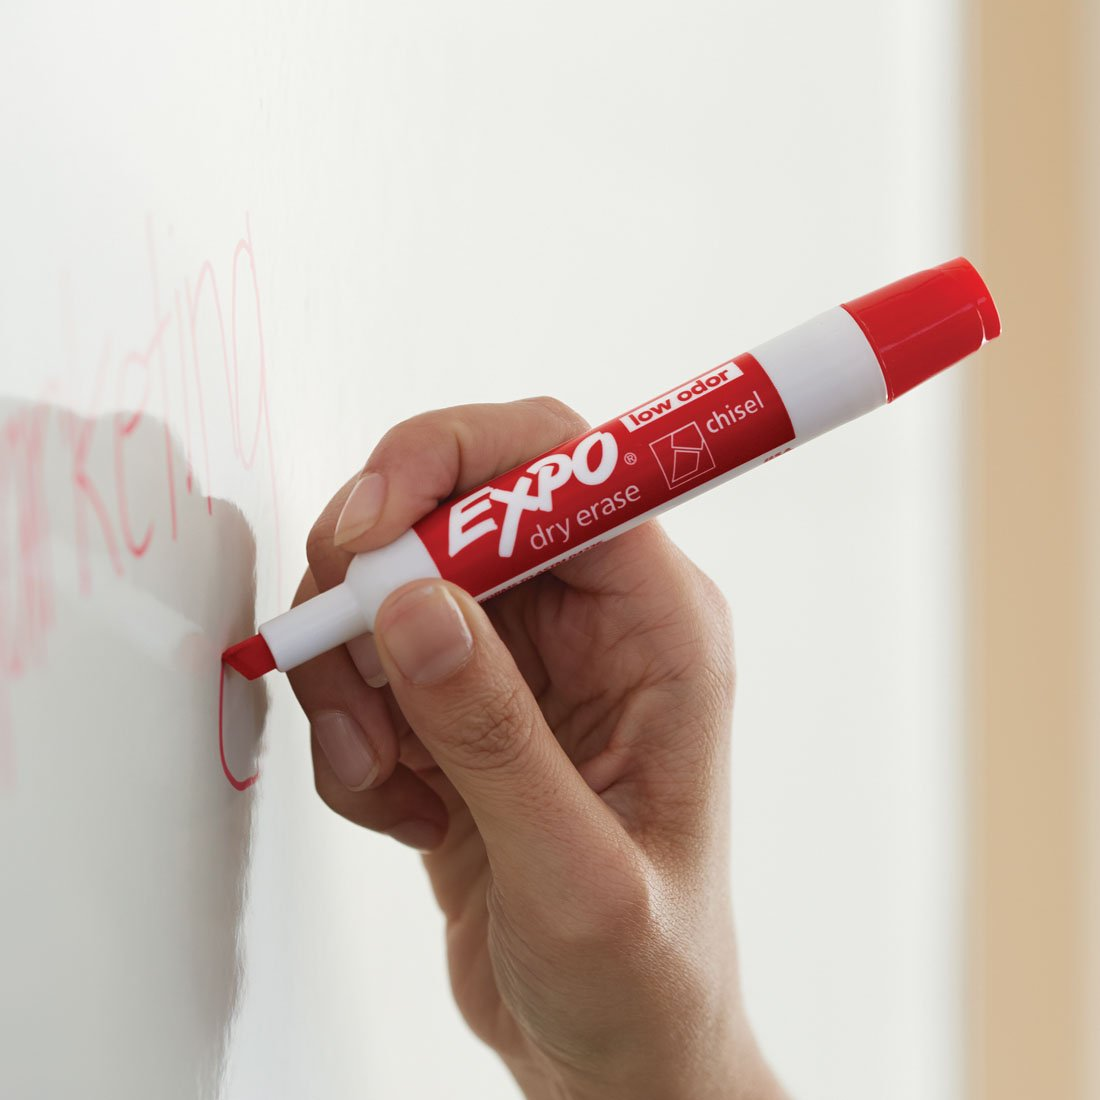 writing-message-on-board-in-red-expo-chisel-marker.jpg